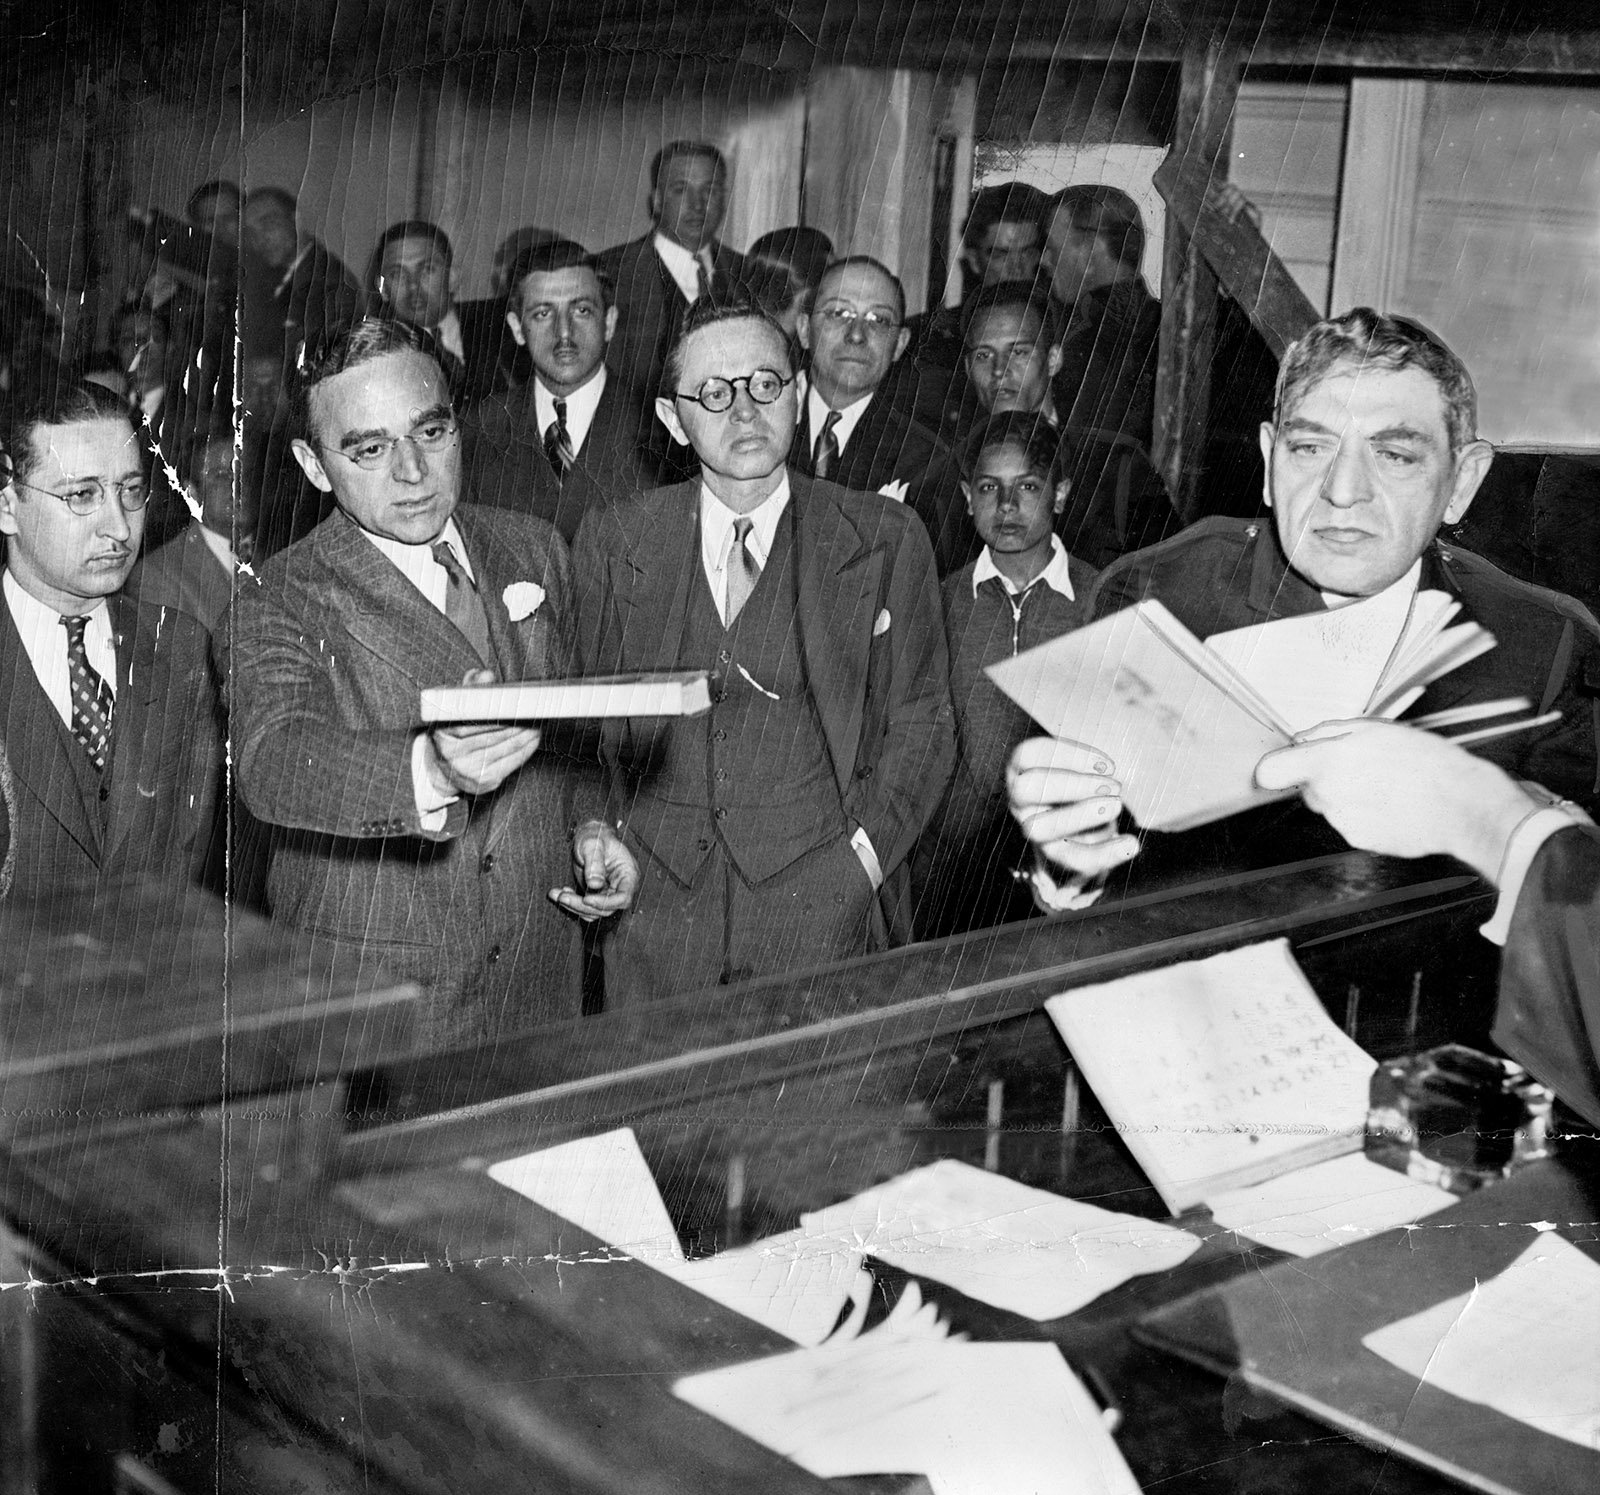 Morris Ernst (second from left) defending Gustave Flaubert's November in court against charges of obscenity, New York City, 1935